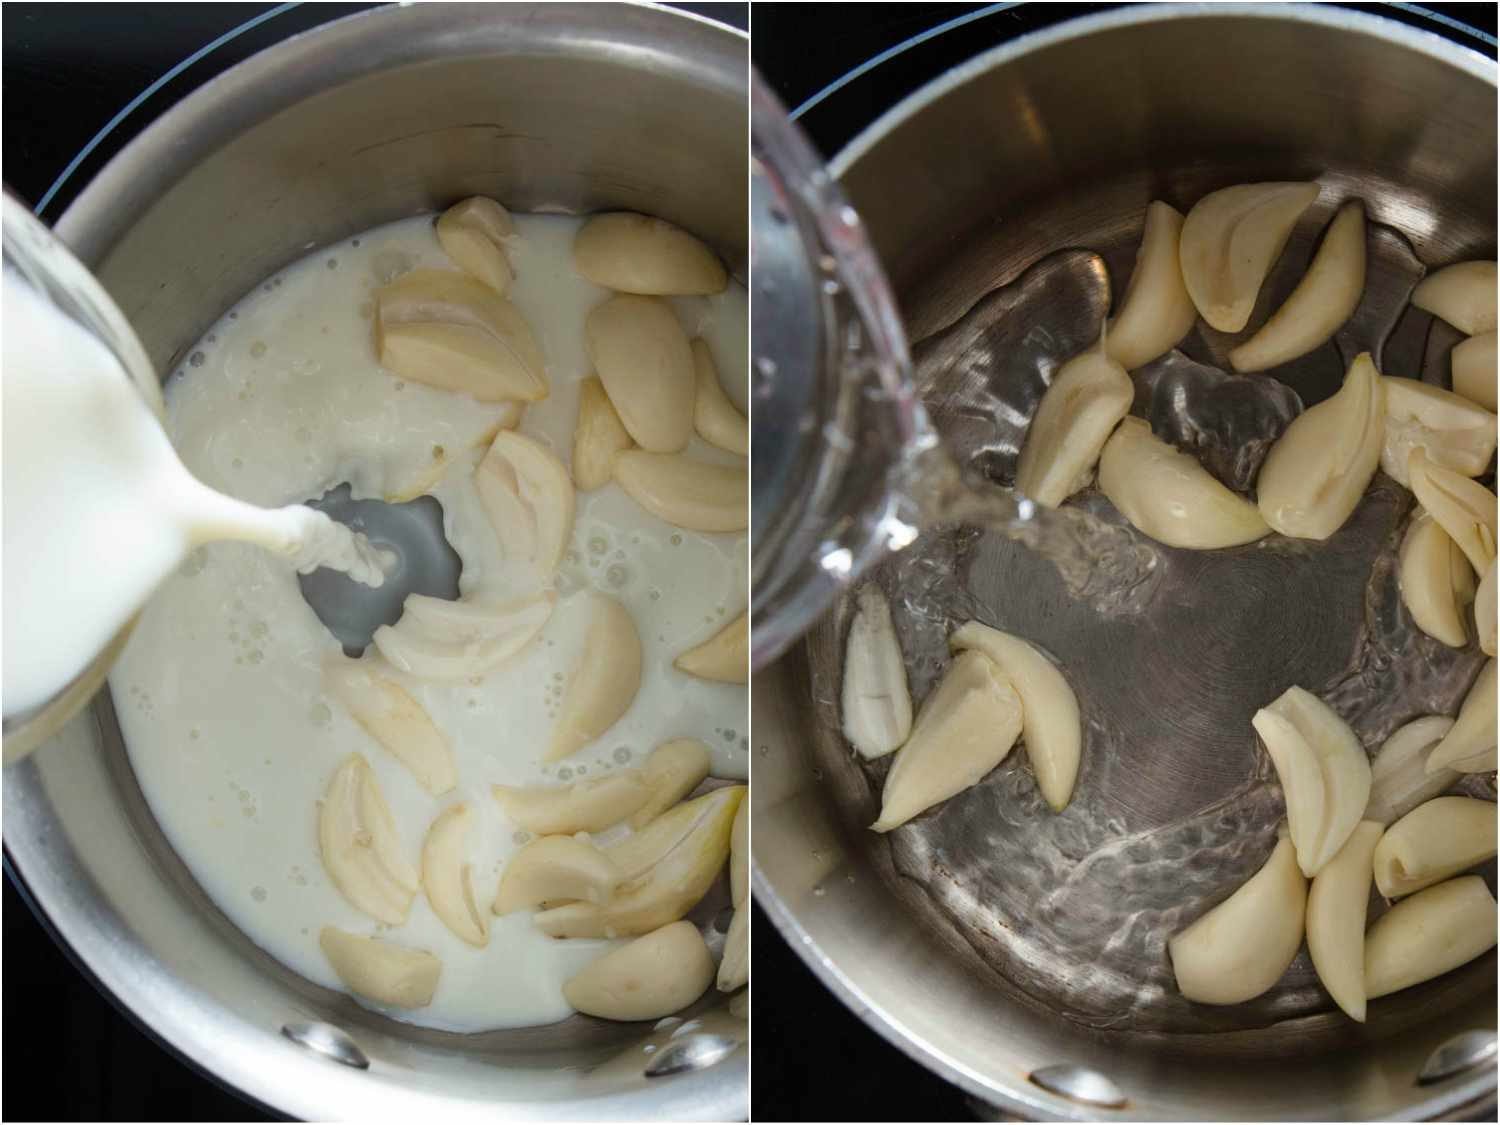 Collage of two photos, showing milk and water, respectively, being added to a pot of garlic cloves